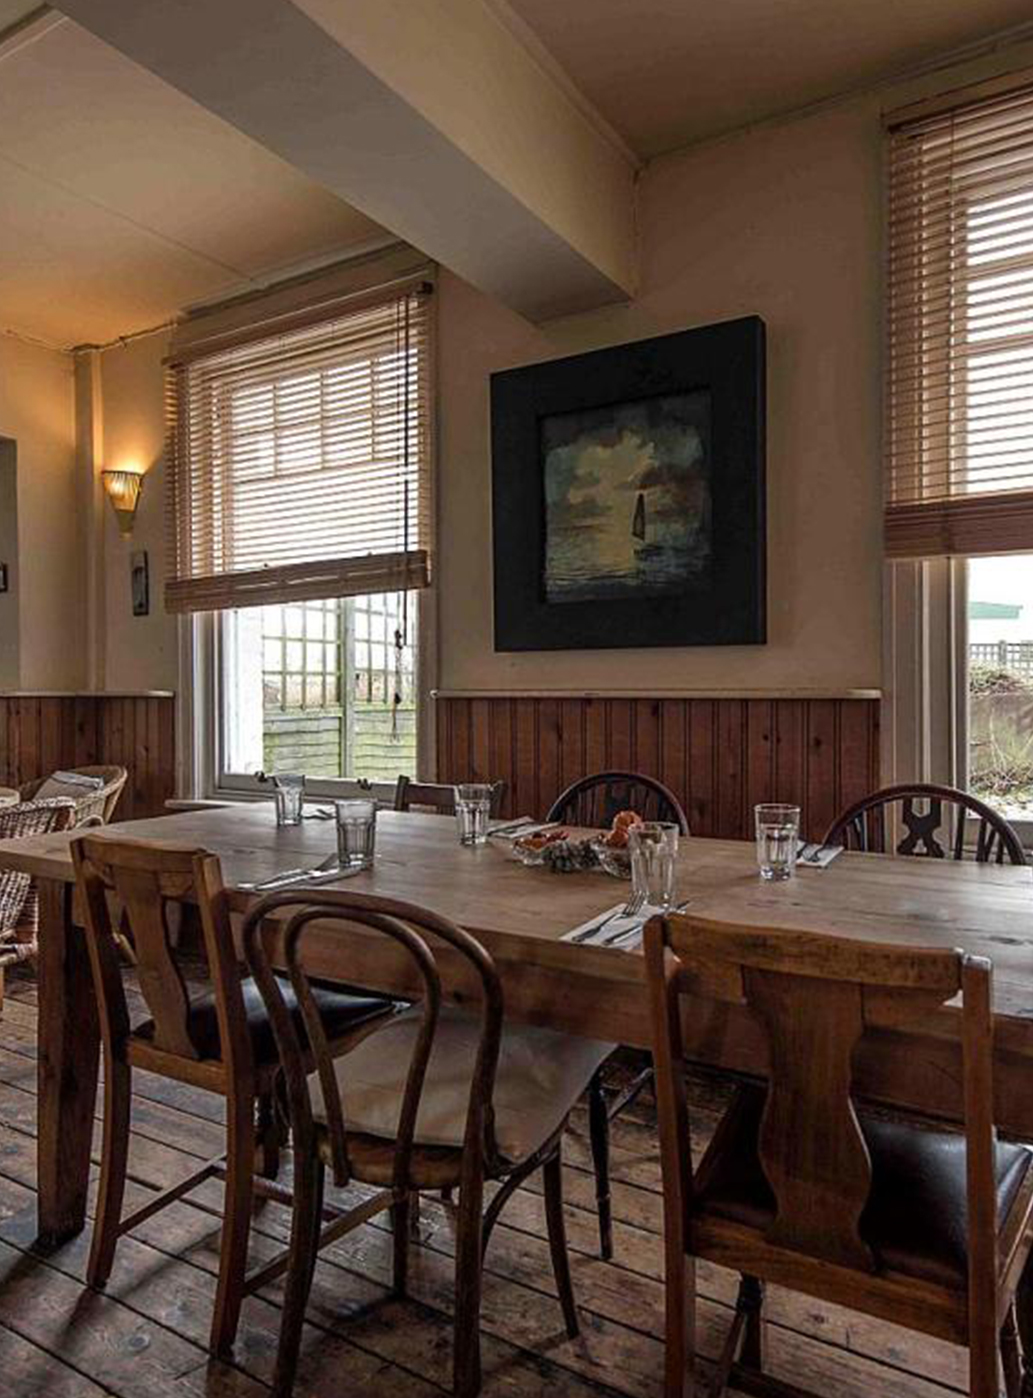 The Sportsman is no ordinary pub, this michelin starred restaurant is not to be missed.